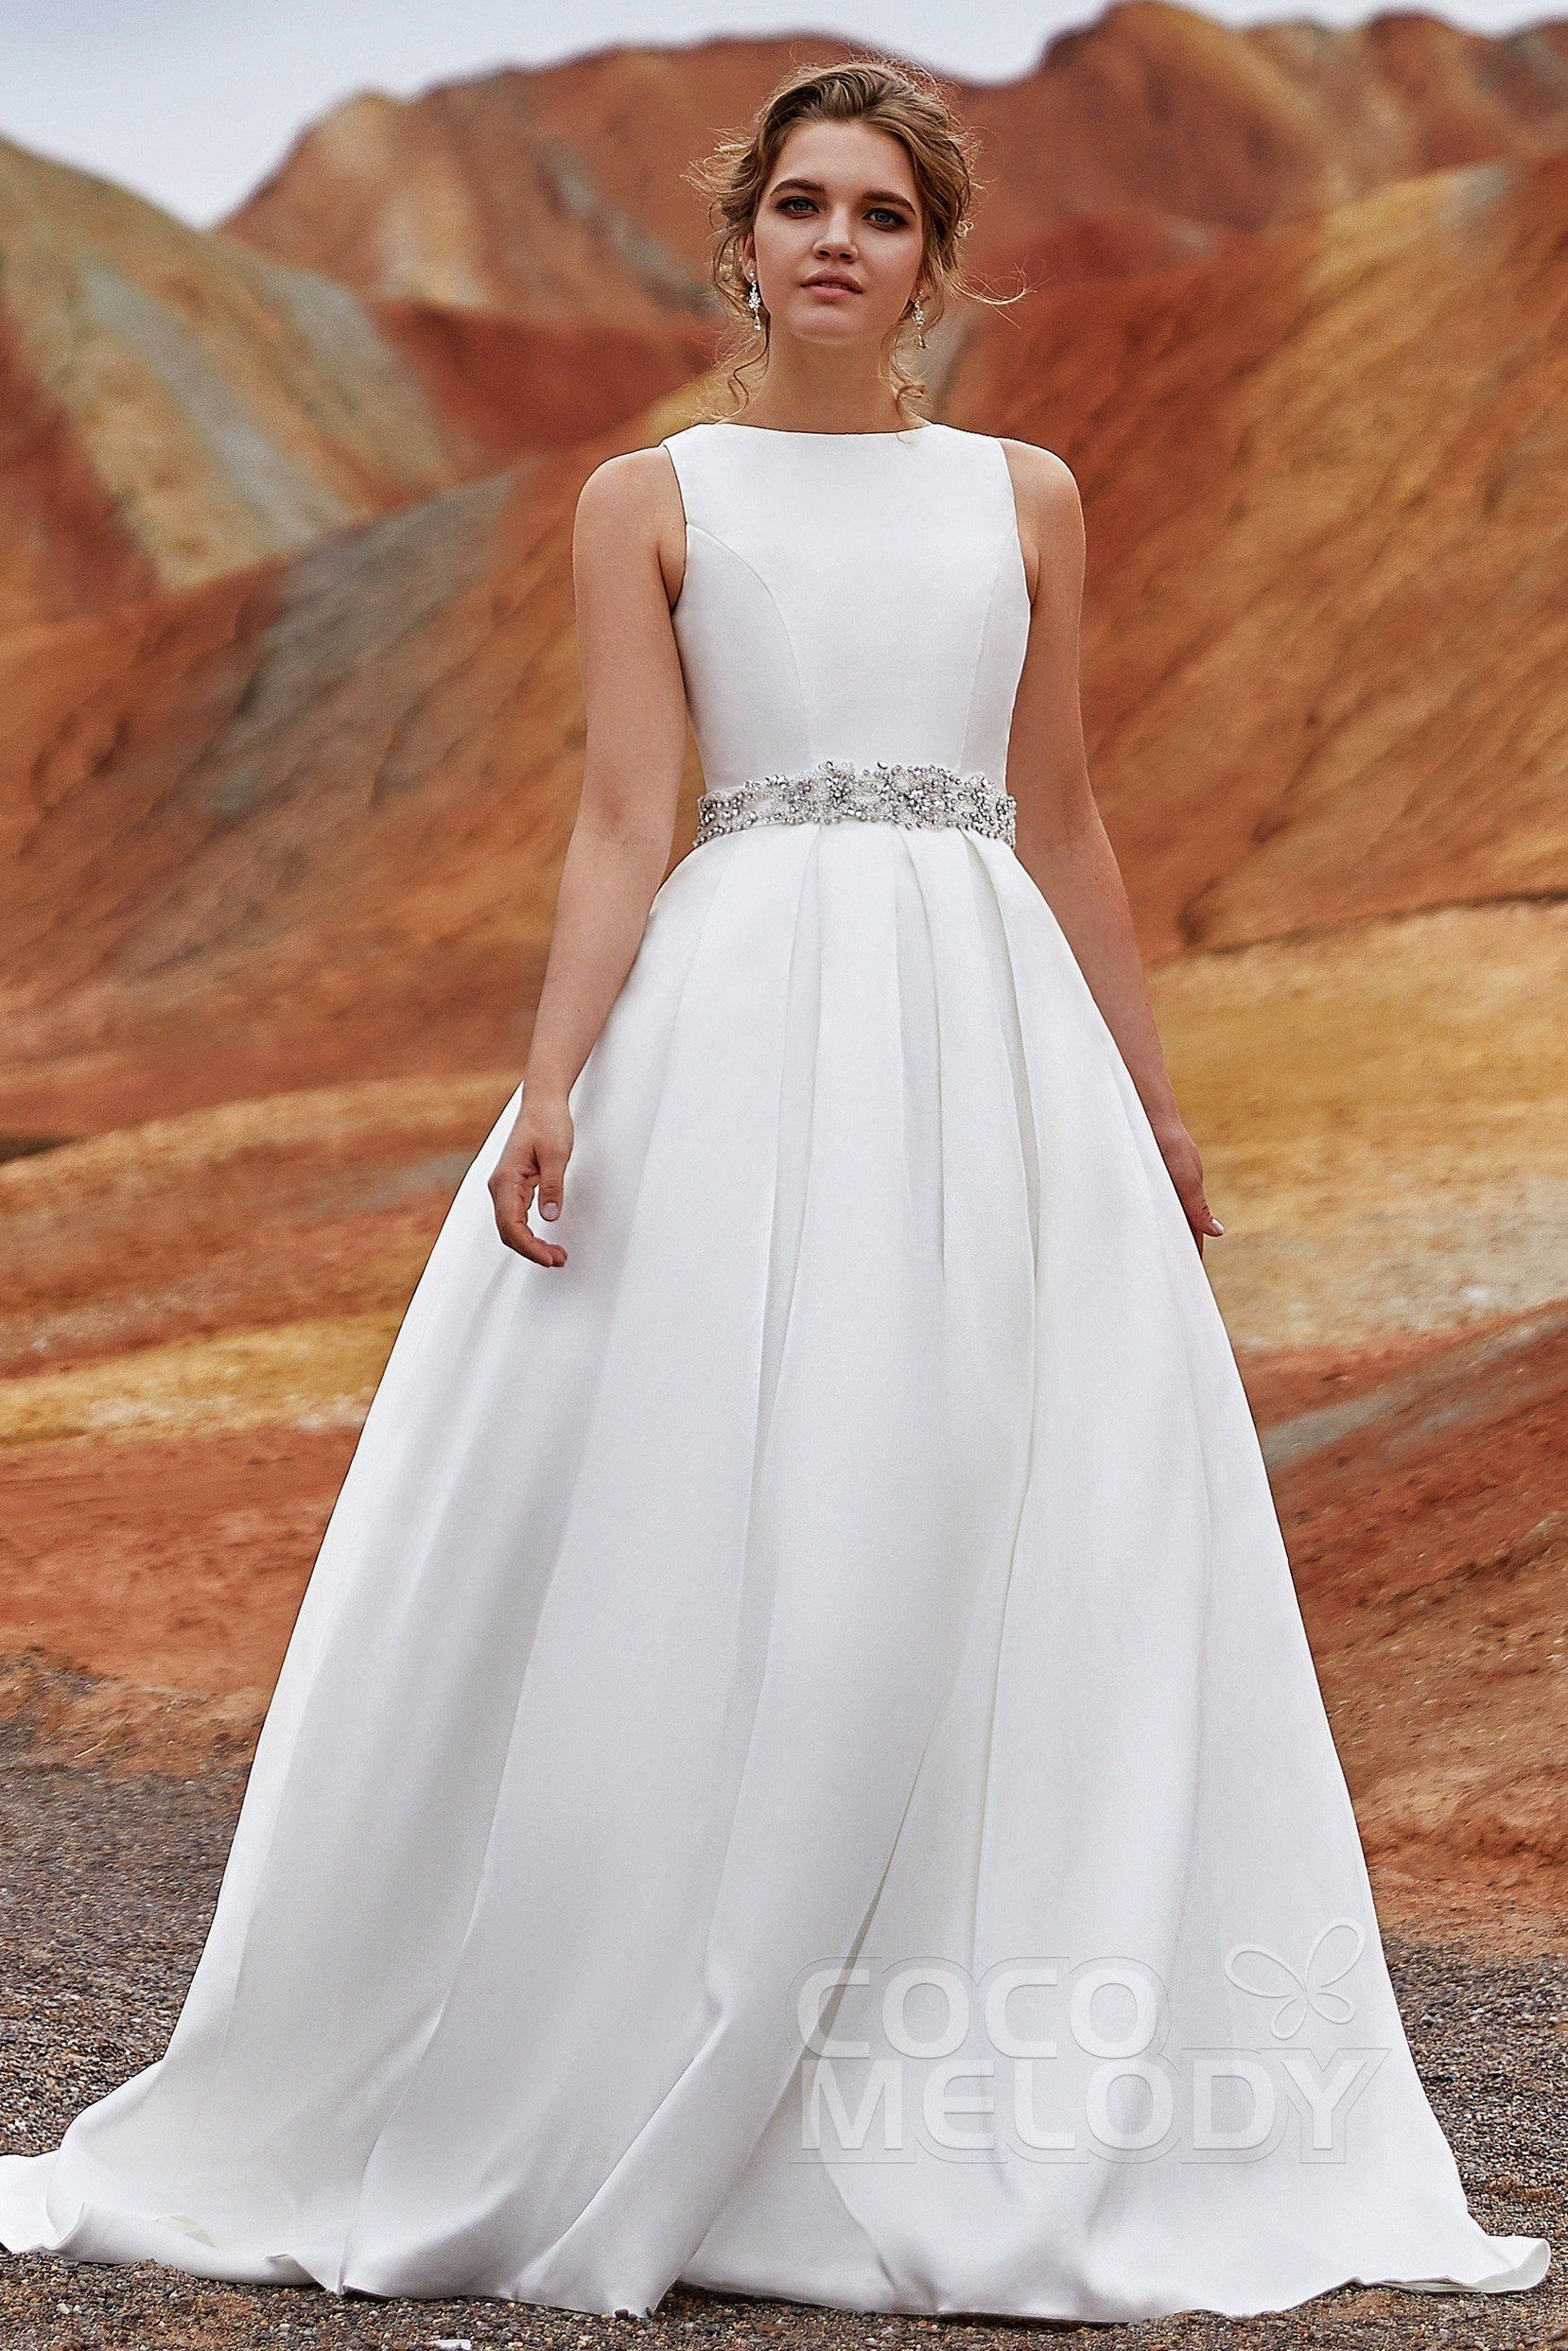 42++ Wedding dresses for large bust small waist information